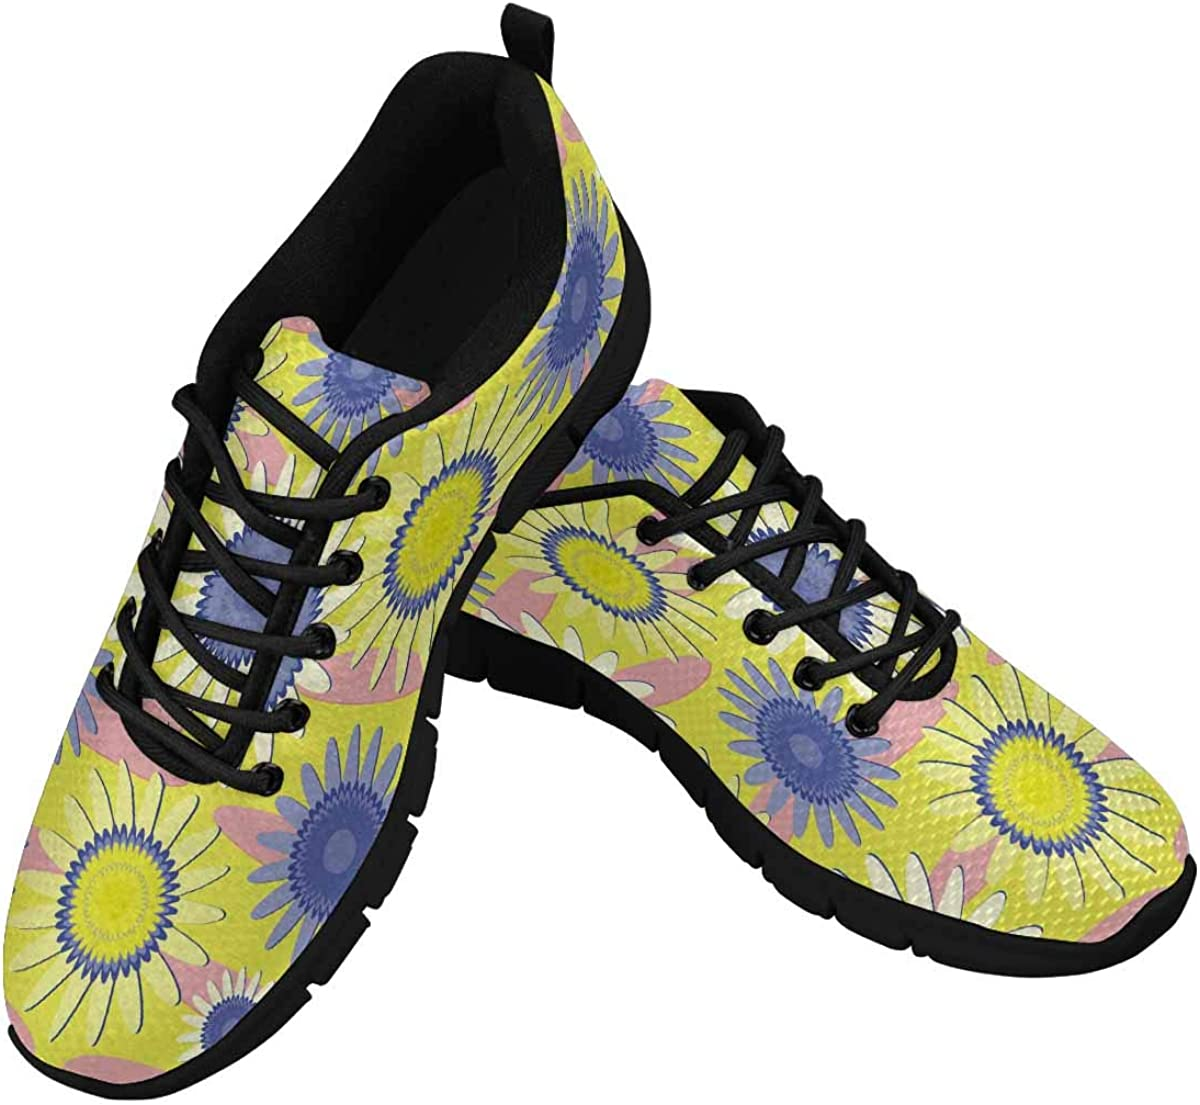 InterestPrint Yellow and Blue Flowers Women's Athletic Walking Shoes Breathe Comfort Mesh